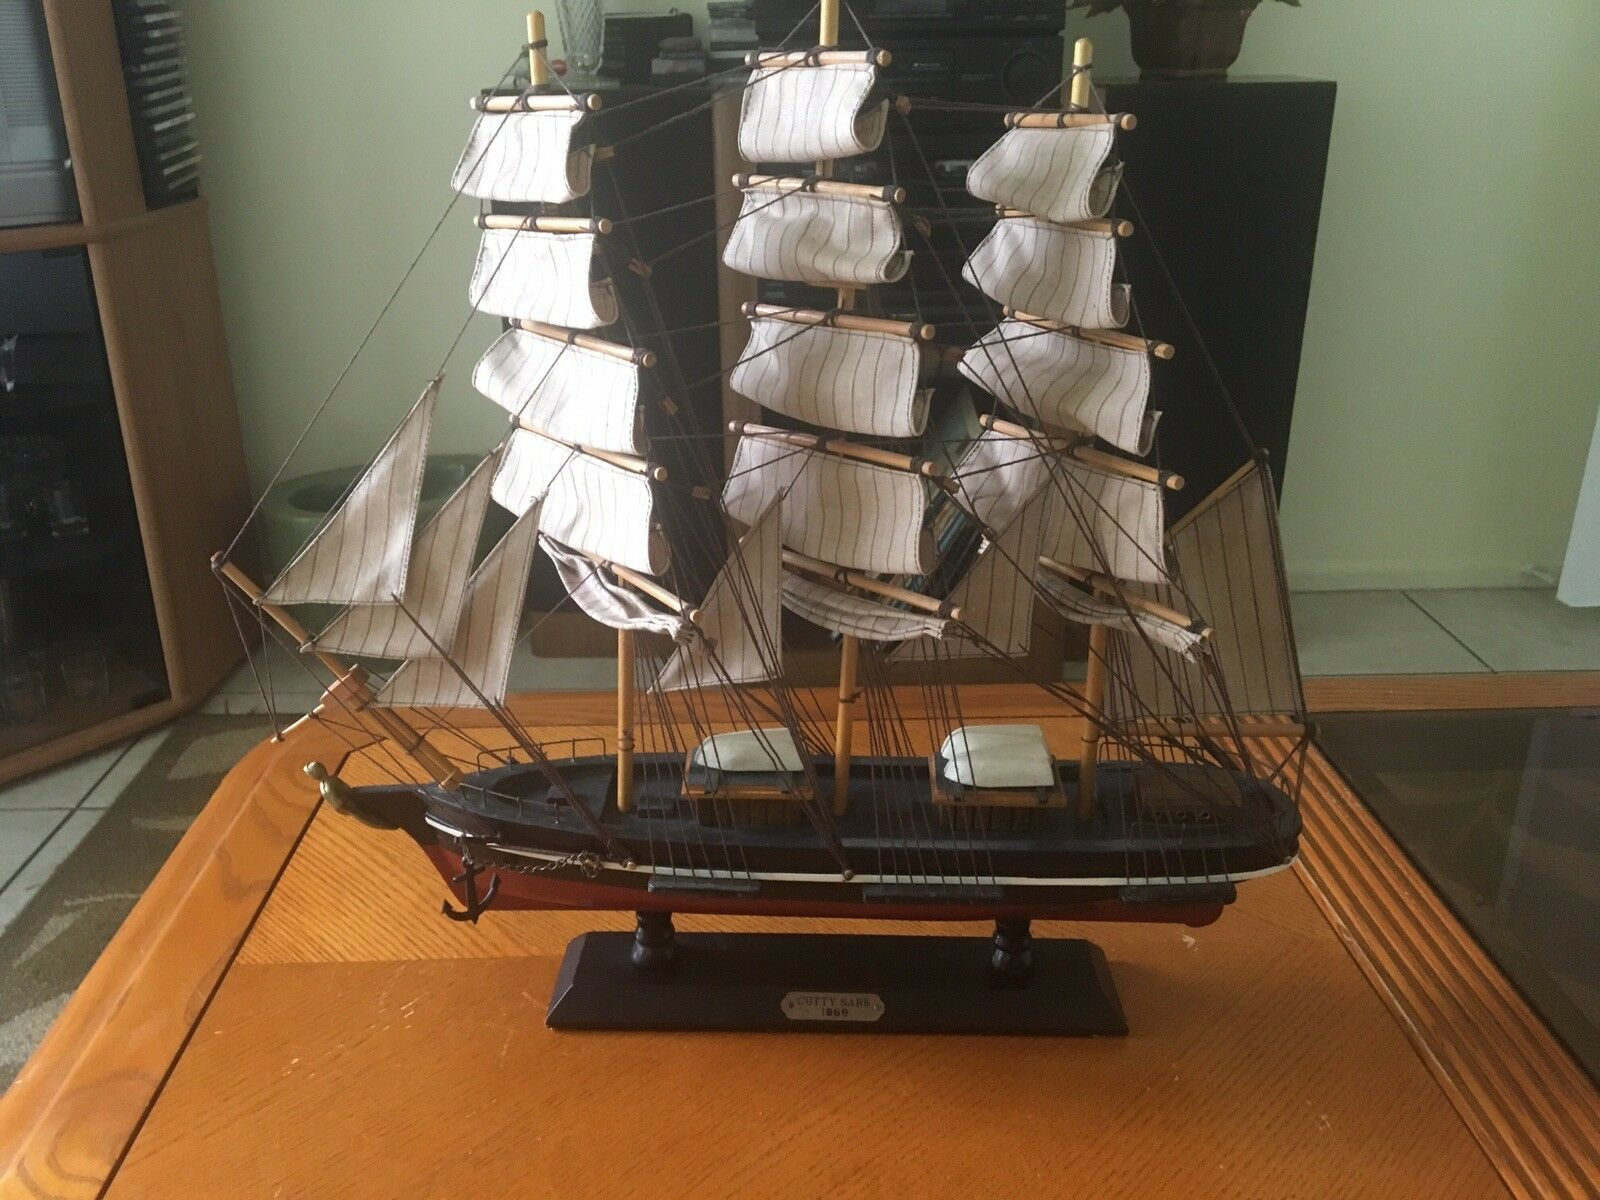 Vintage Wooden Model Cutty Sark 1869 Clipper Ship Home Decor Display 18 x 19 in